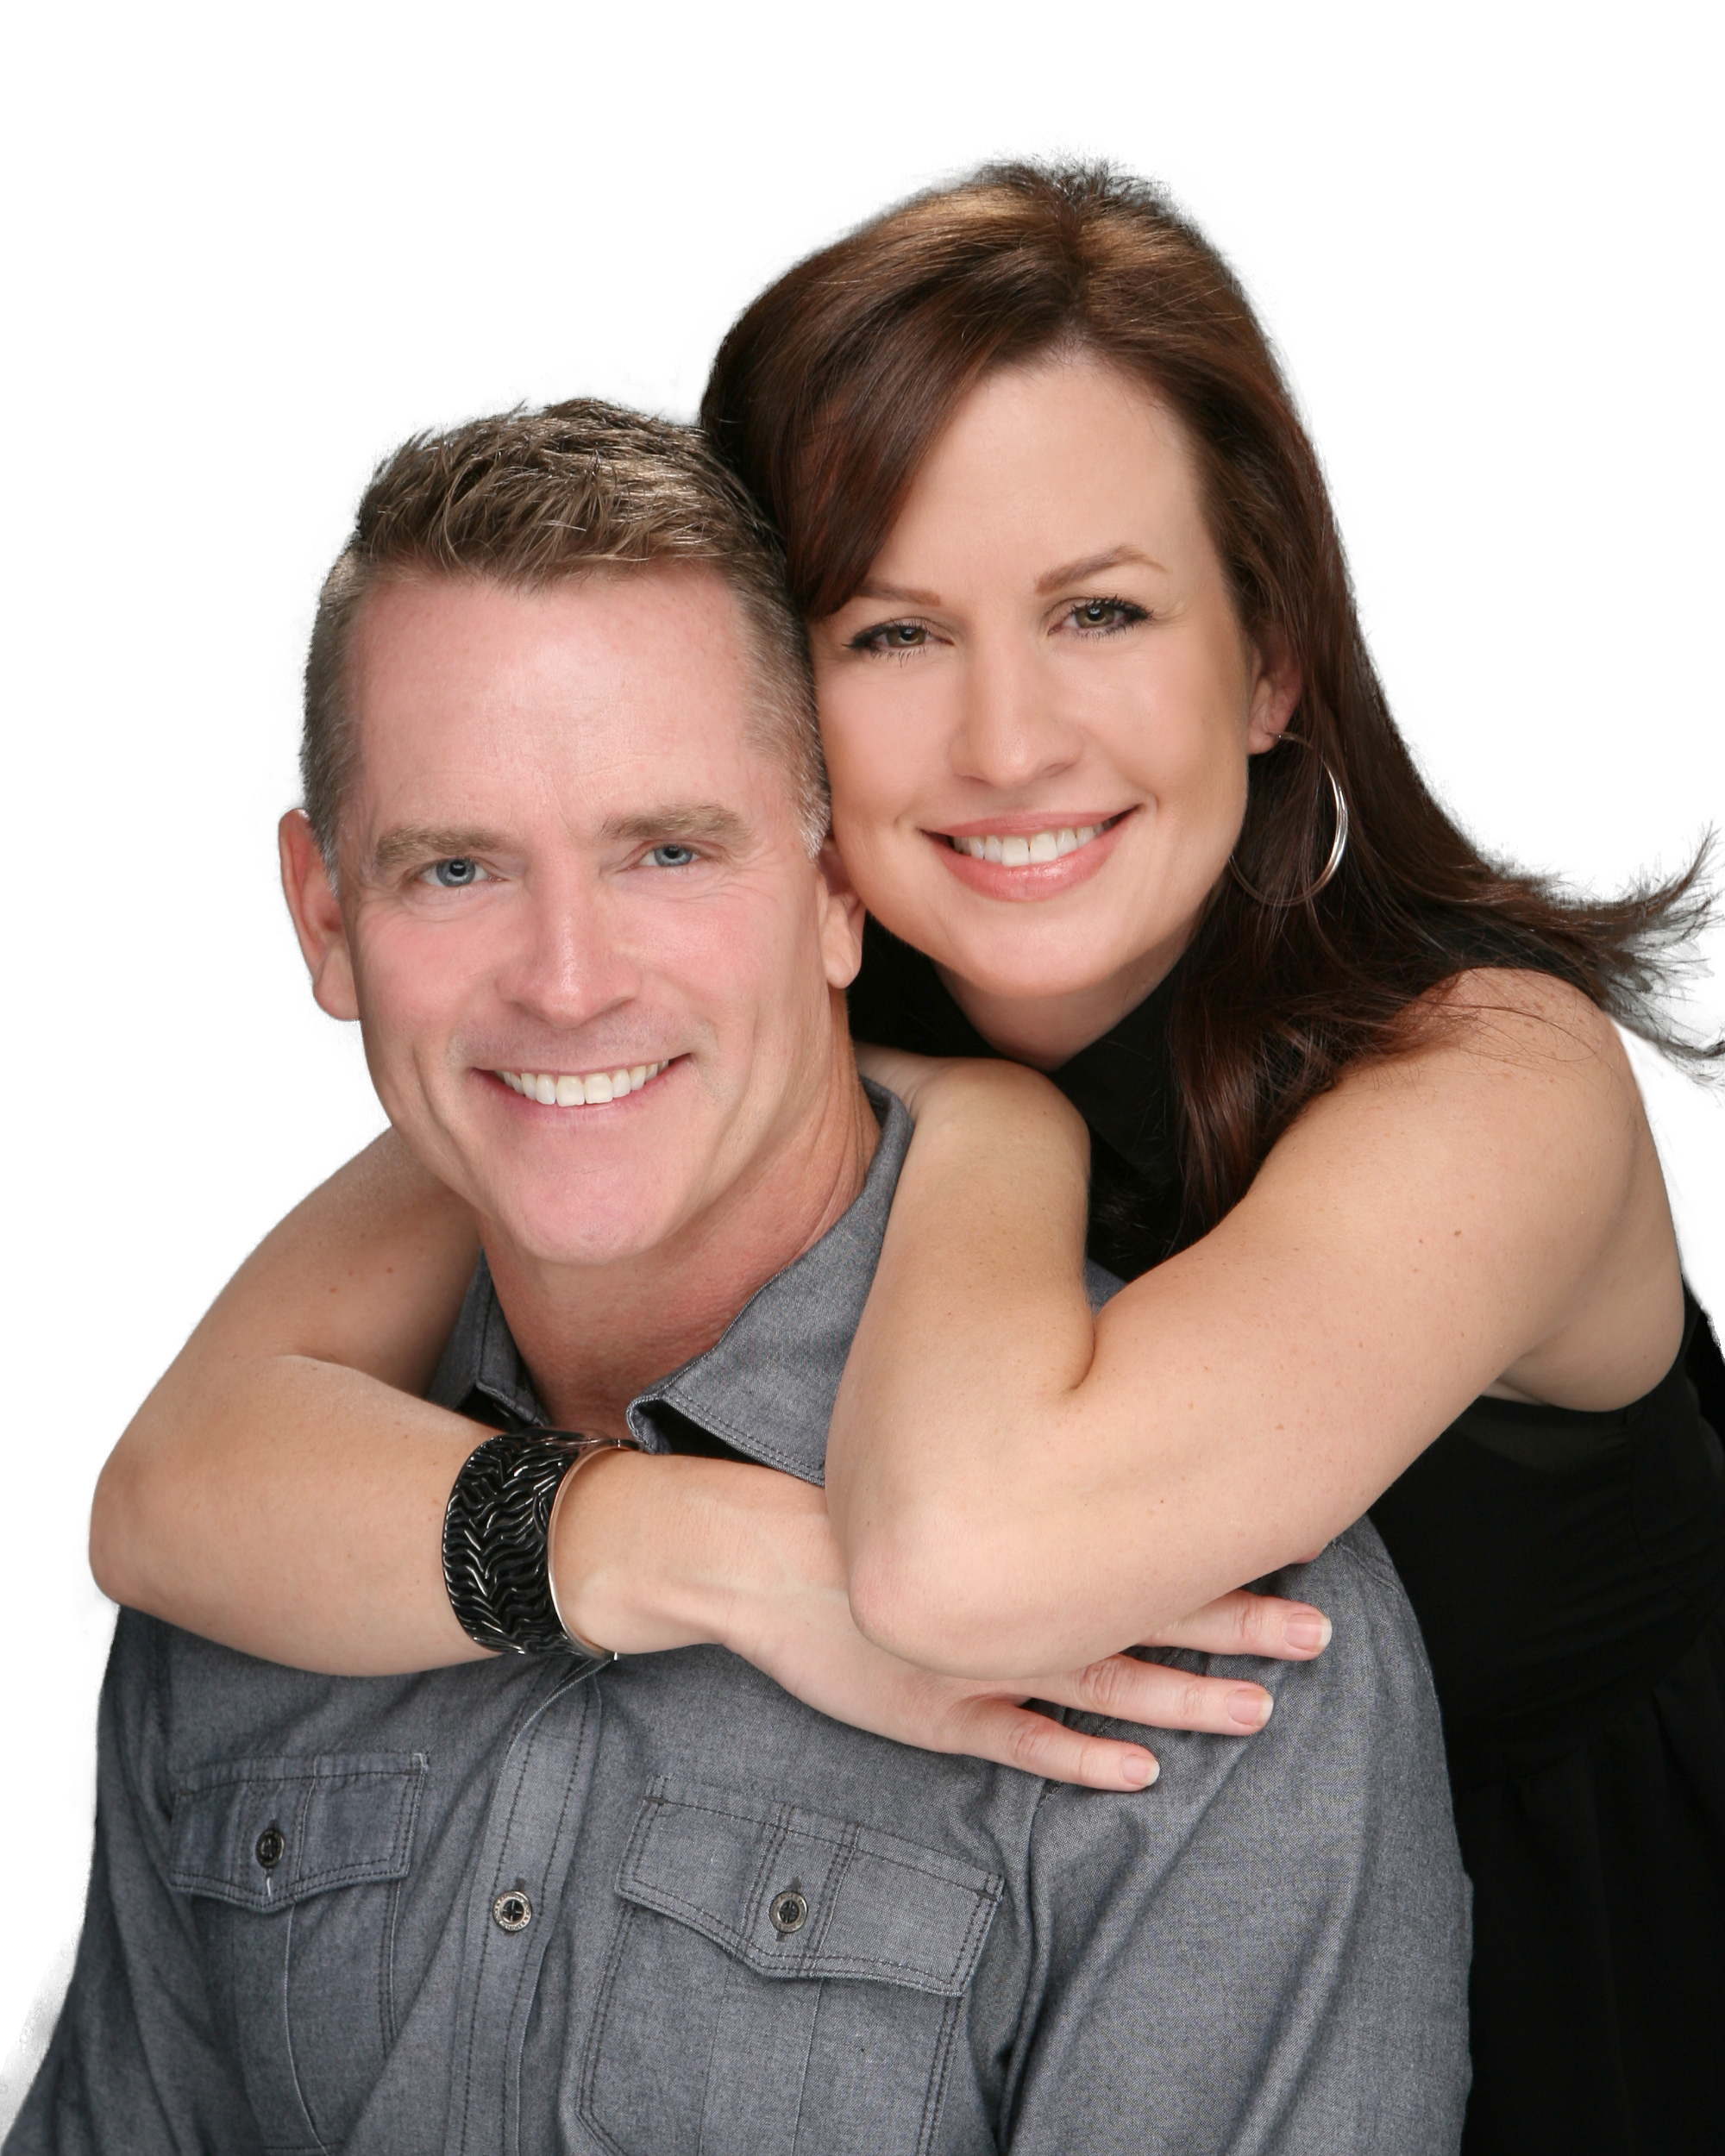 OUR PASTORS - Greg and Brandi SquiresGreg and Brandi became the senior pastors of Freedom Life Church in 2008. Passionate about God and people, they lead to see heaven's will manifested on the earth and people's lives be transformed by the power of God's love. They desire to see every person come to know Christ and reach their full-redemptive potential. Greg and Brandi are both passionate and committed to the mission of the local church. They live in the Kissimmee/St. Cloud area along with their four children.MORE ABOUT GREGMORE ABOUT BRANDIA Welcome Letter From Our Pastor